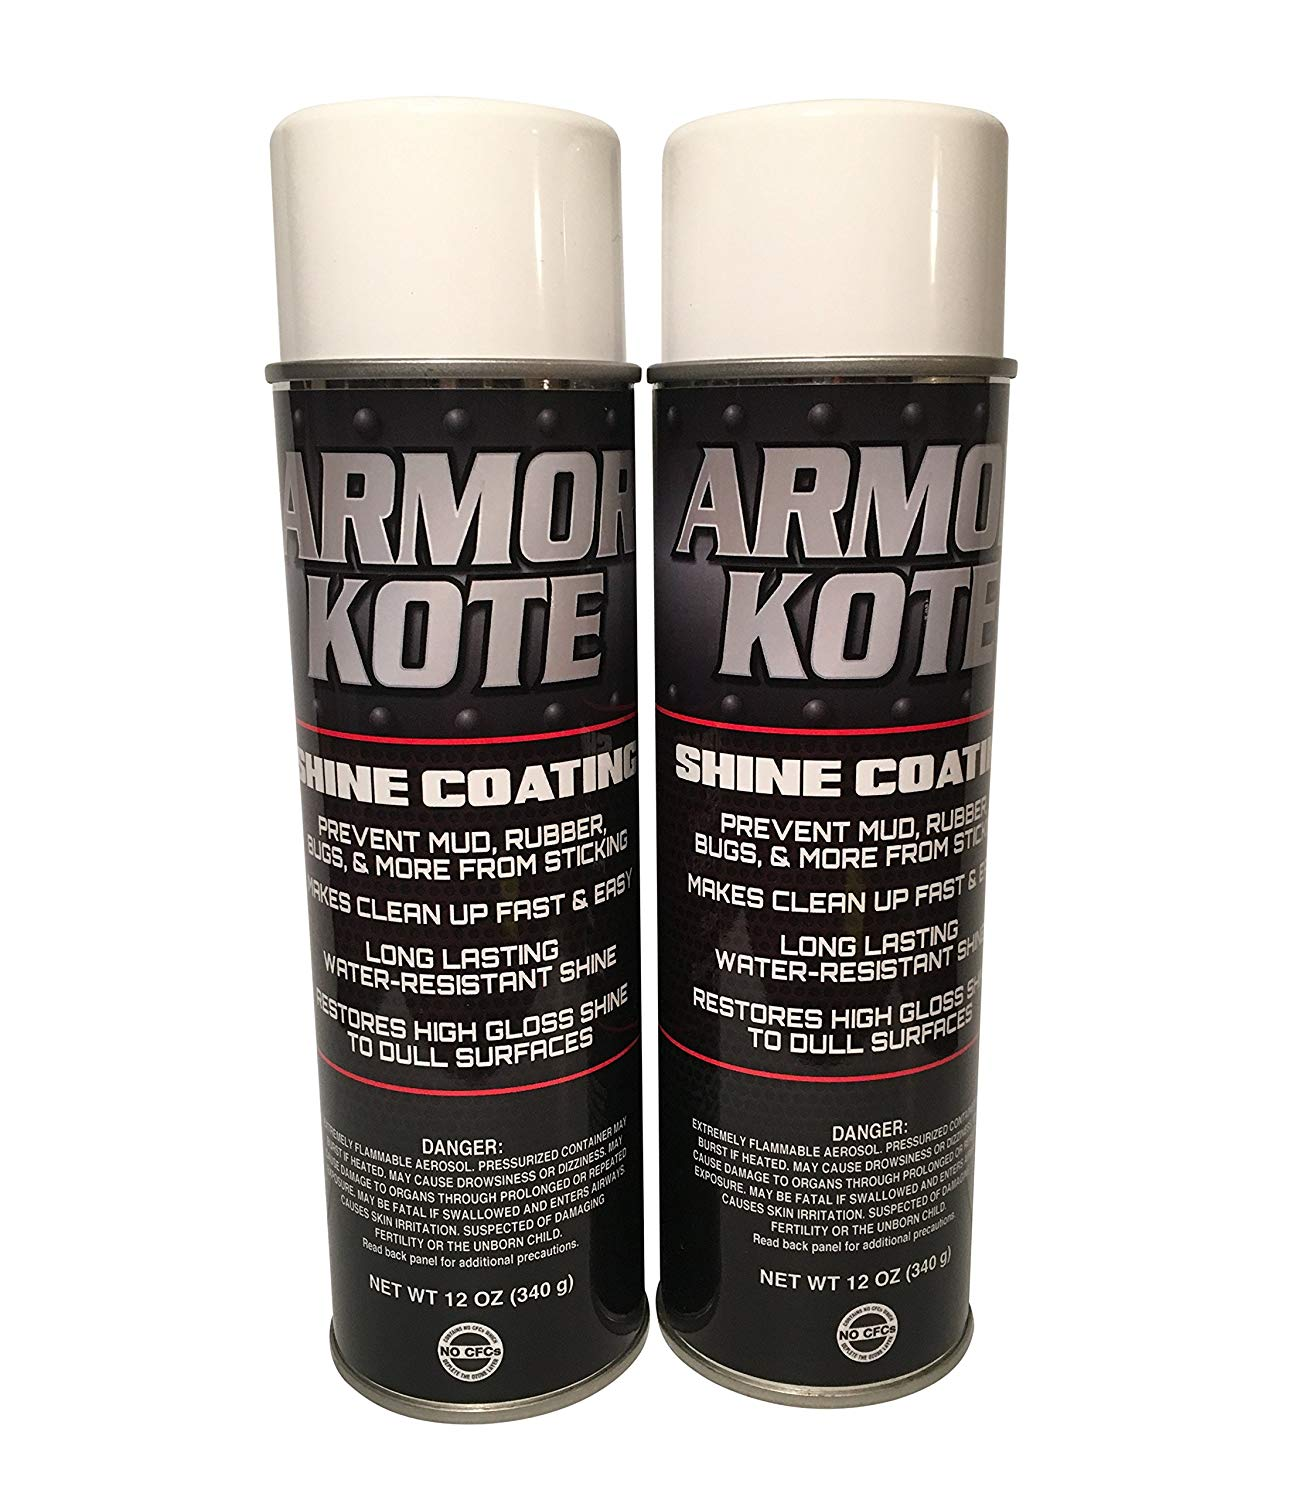 Armor Kote - Ultimate Protectant and Cleaning - Pack of 2